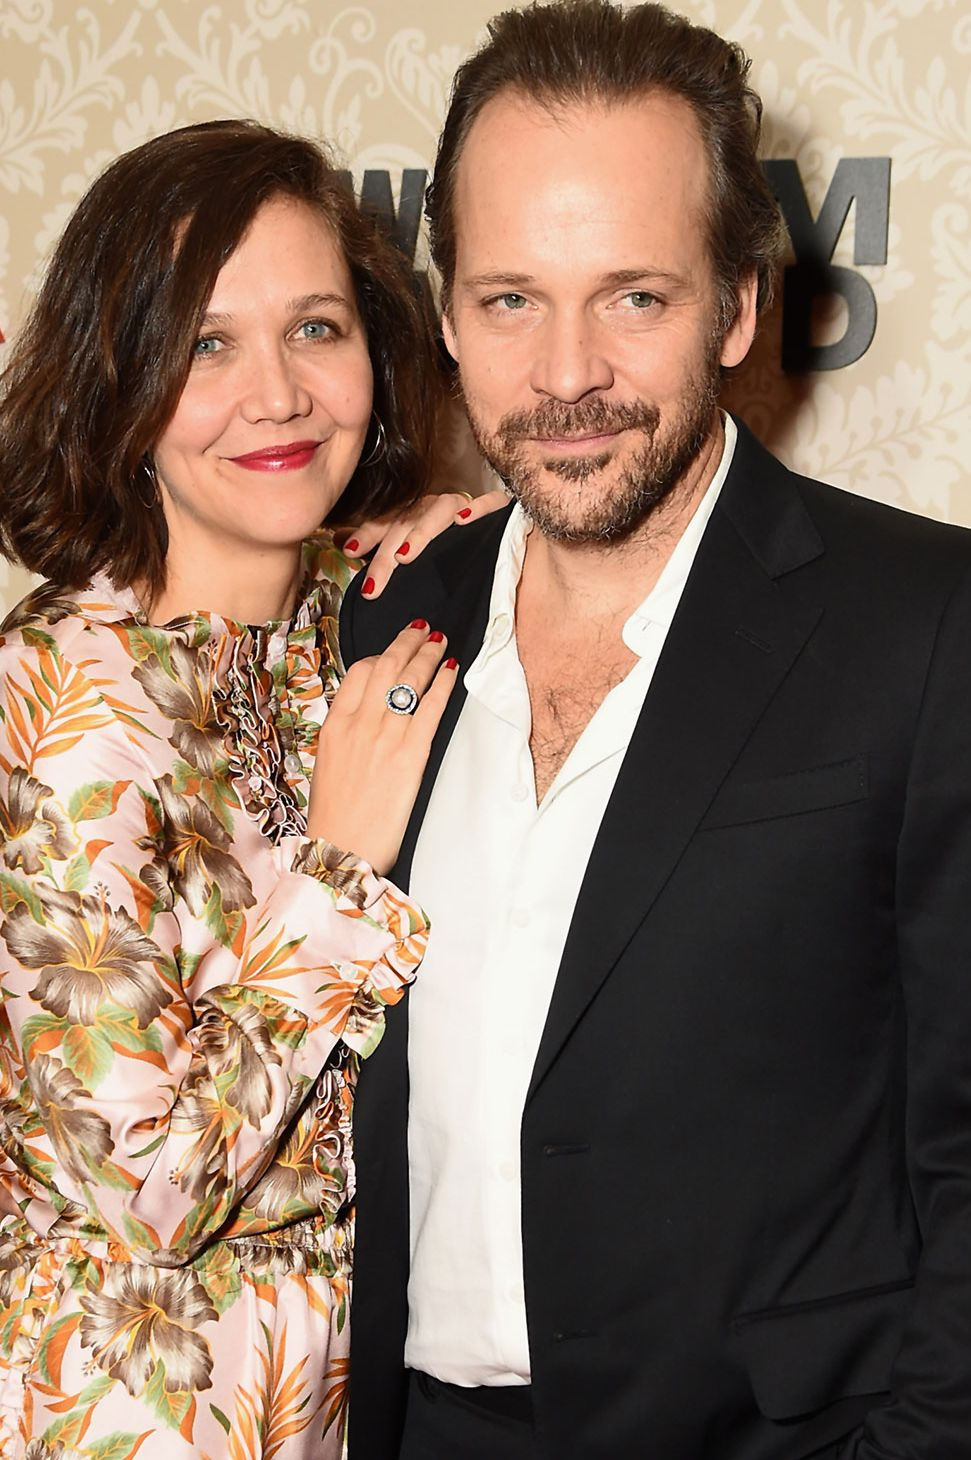 Maggie Gyllenhaal and Peter Sarsgaard We wouldn't exactly call them twins, but these two both have that hipster boho thing going on.